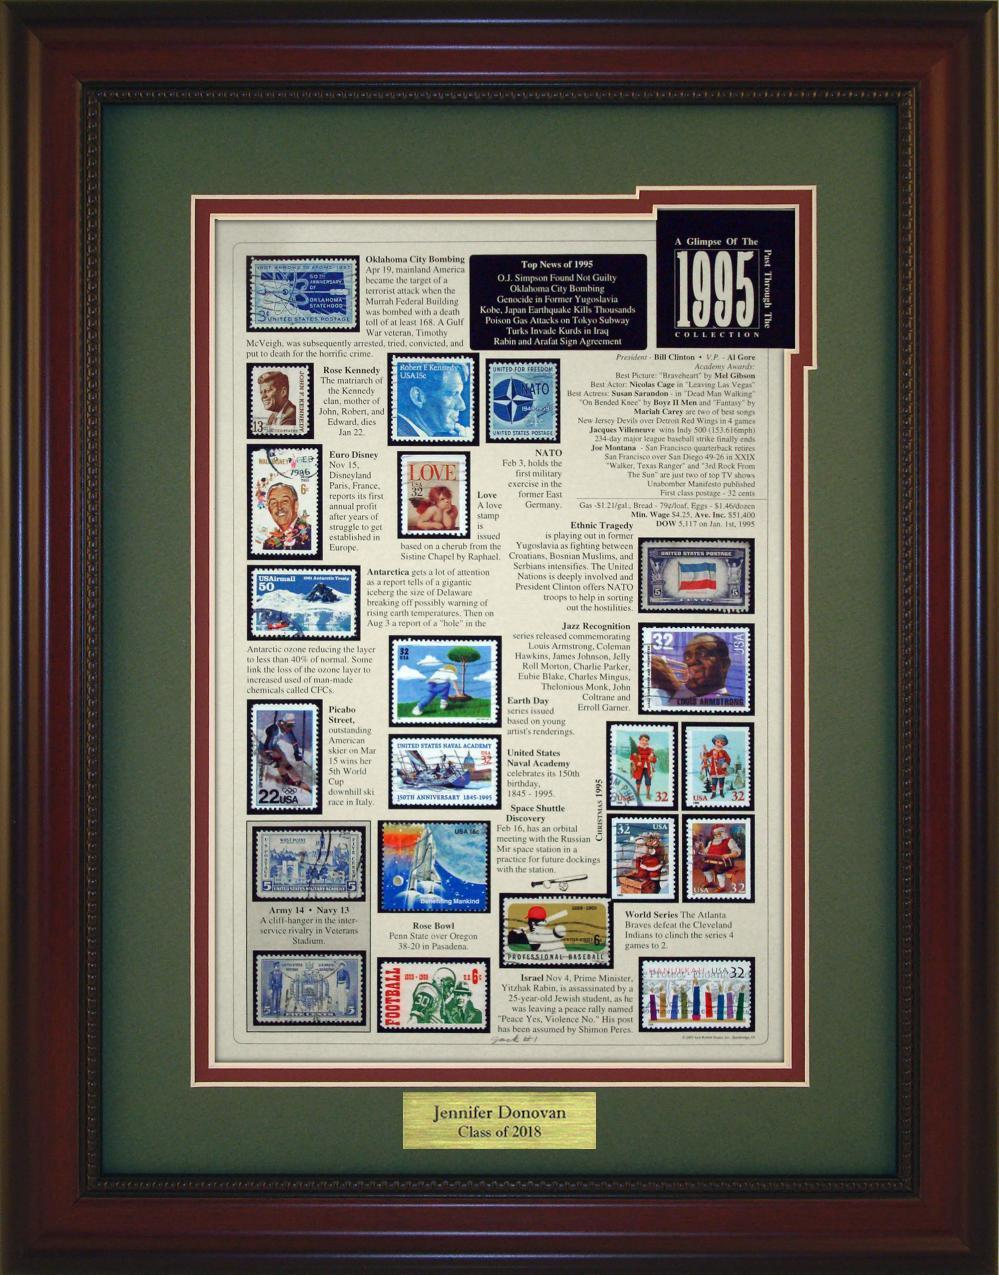 Year 1995 - Personalized Unique Framed Gift